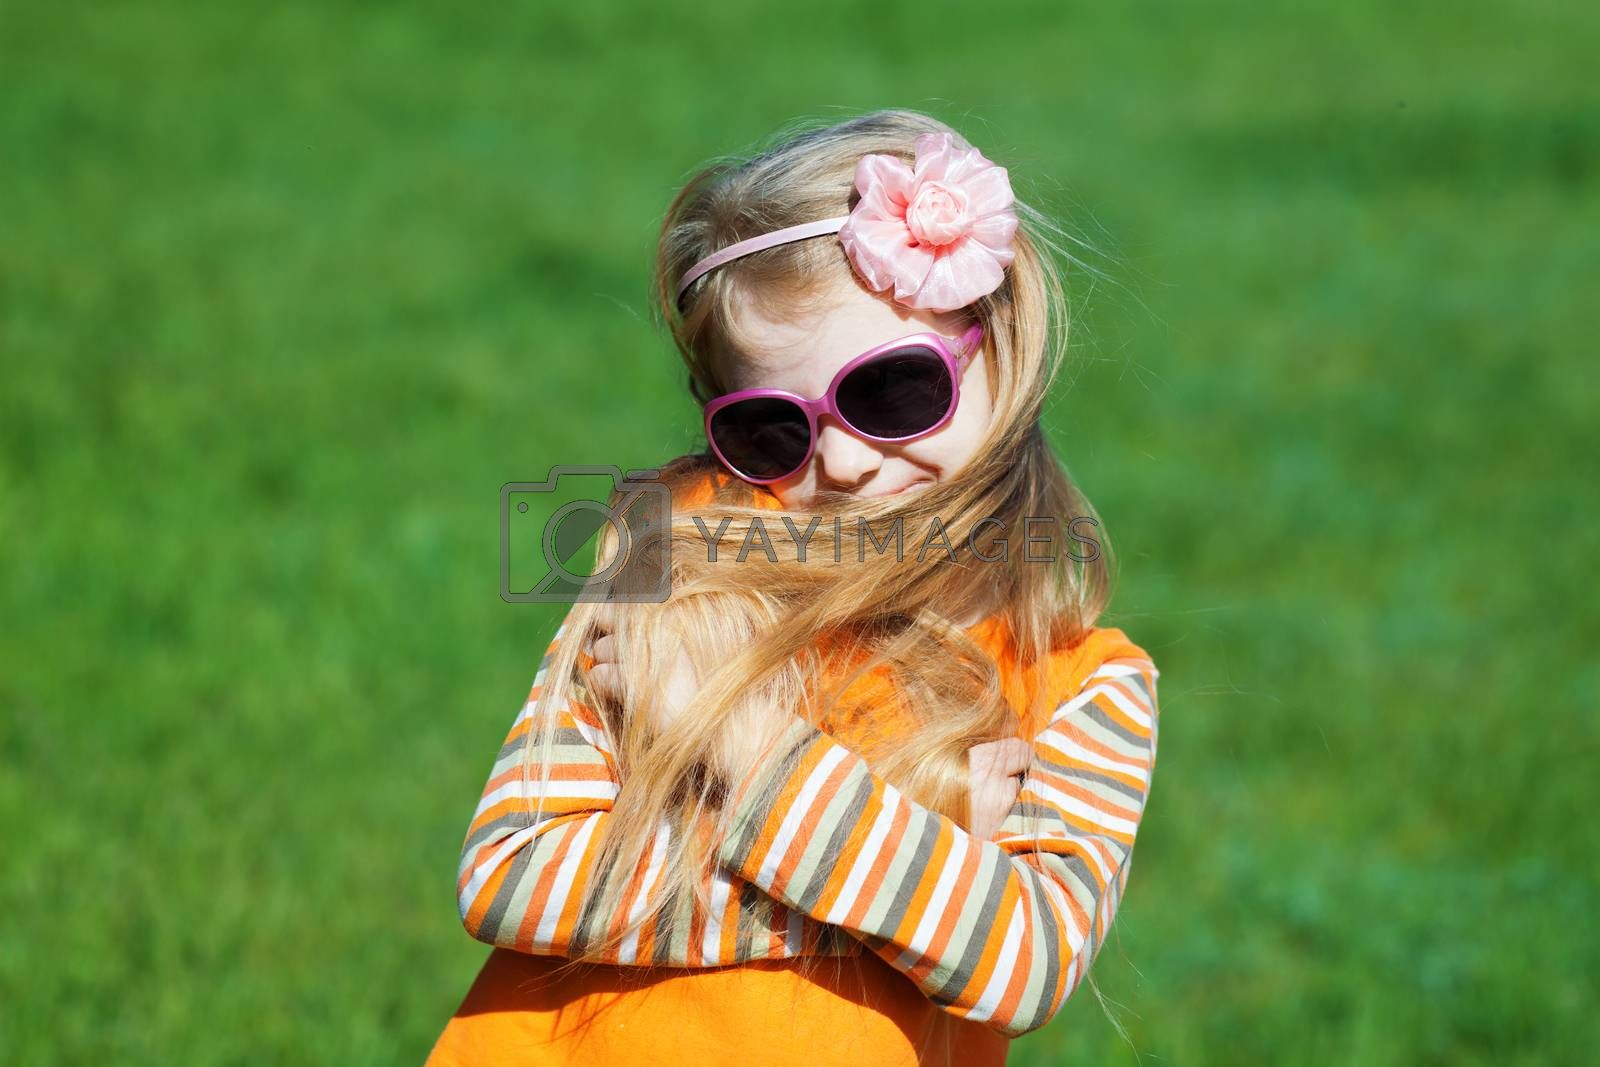 shy fashion girl with long hair outdoors